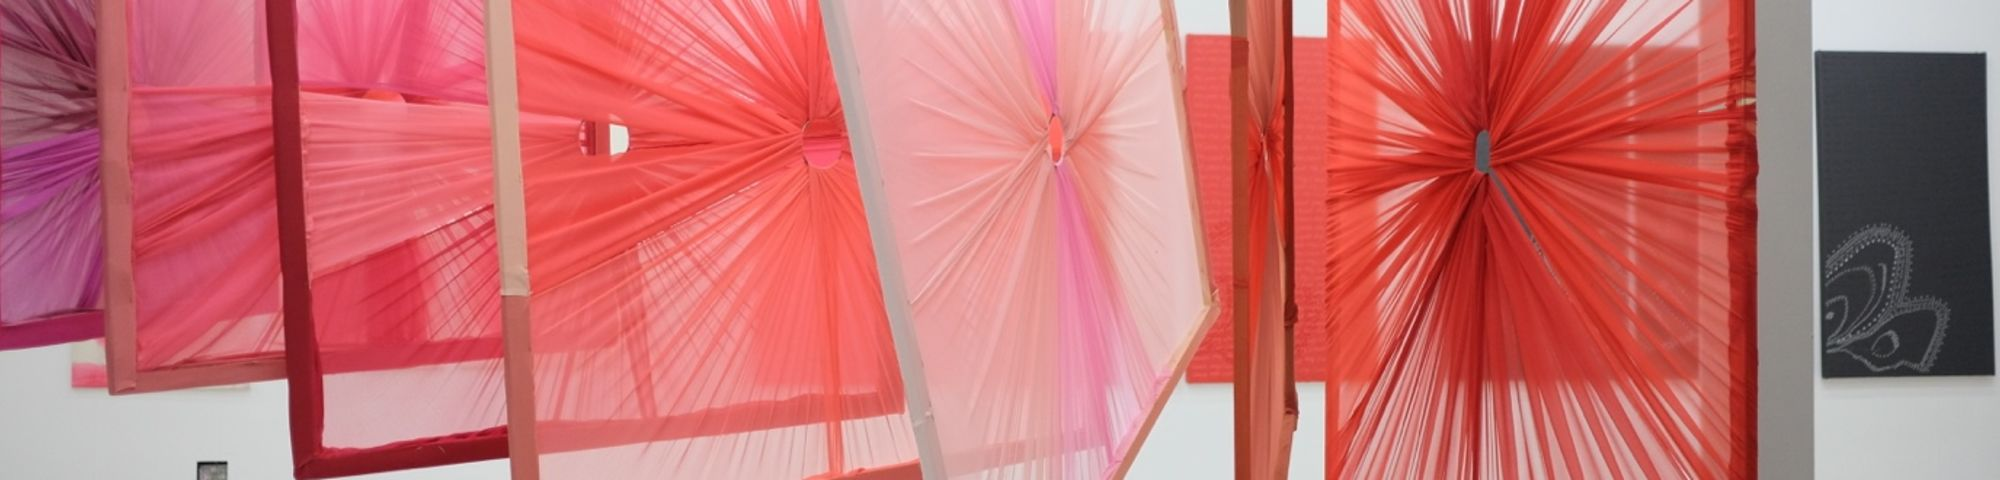 Frames with textile draped around them hanging from the ceiling in a gallery